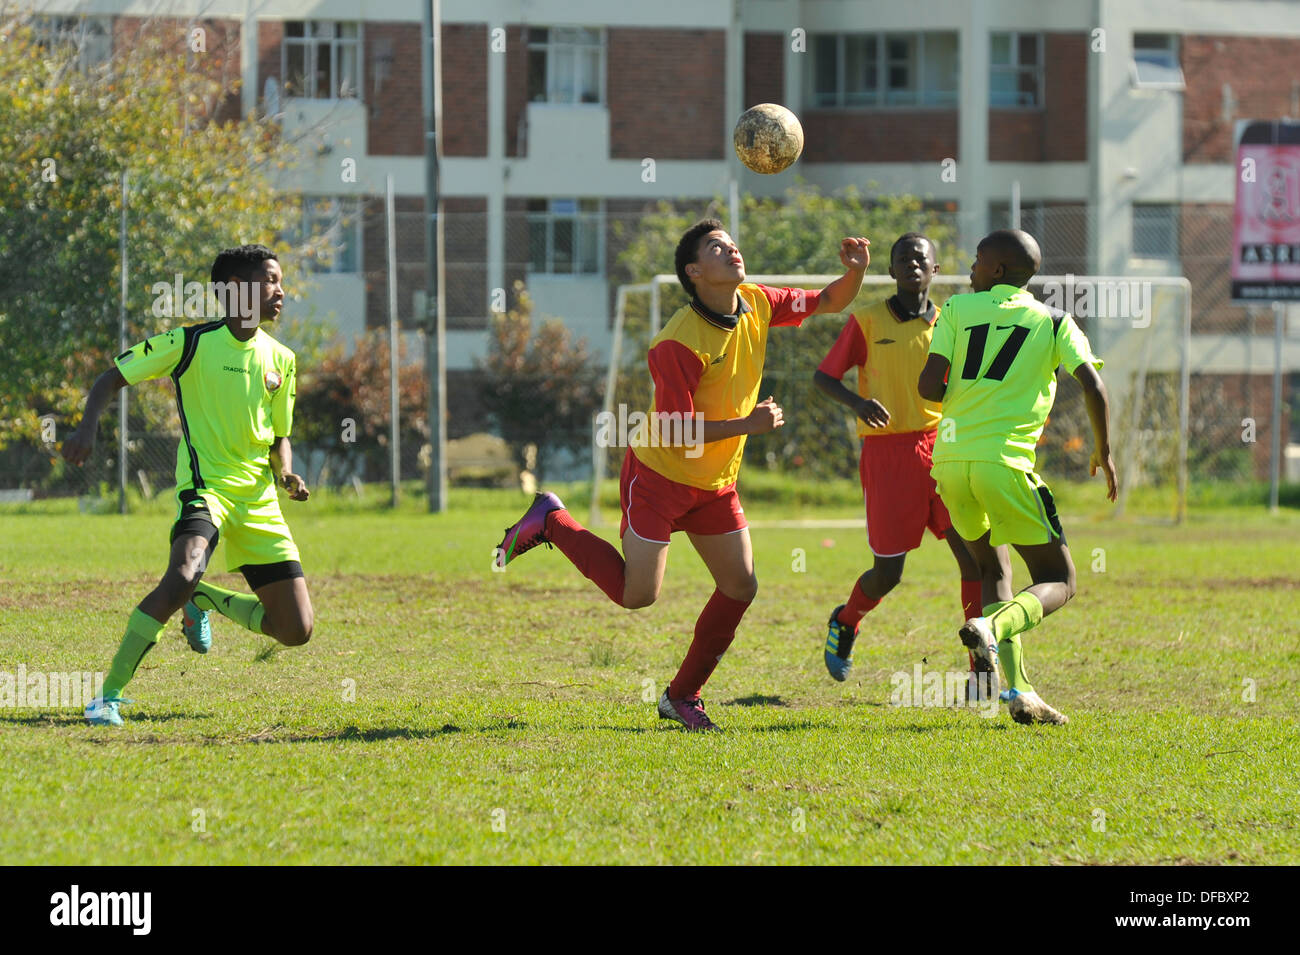 Junior football player heading the ball, Cape Town, Western Cape, South Africa - Stock Image